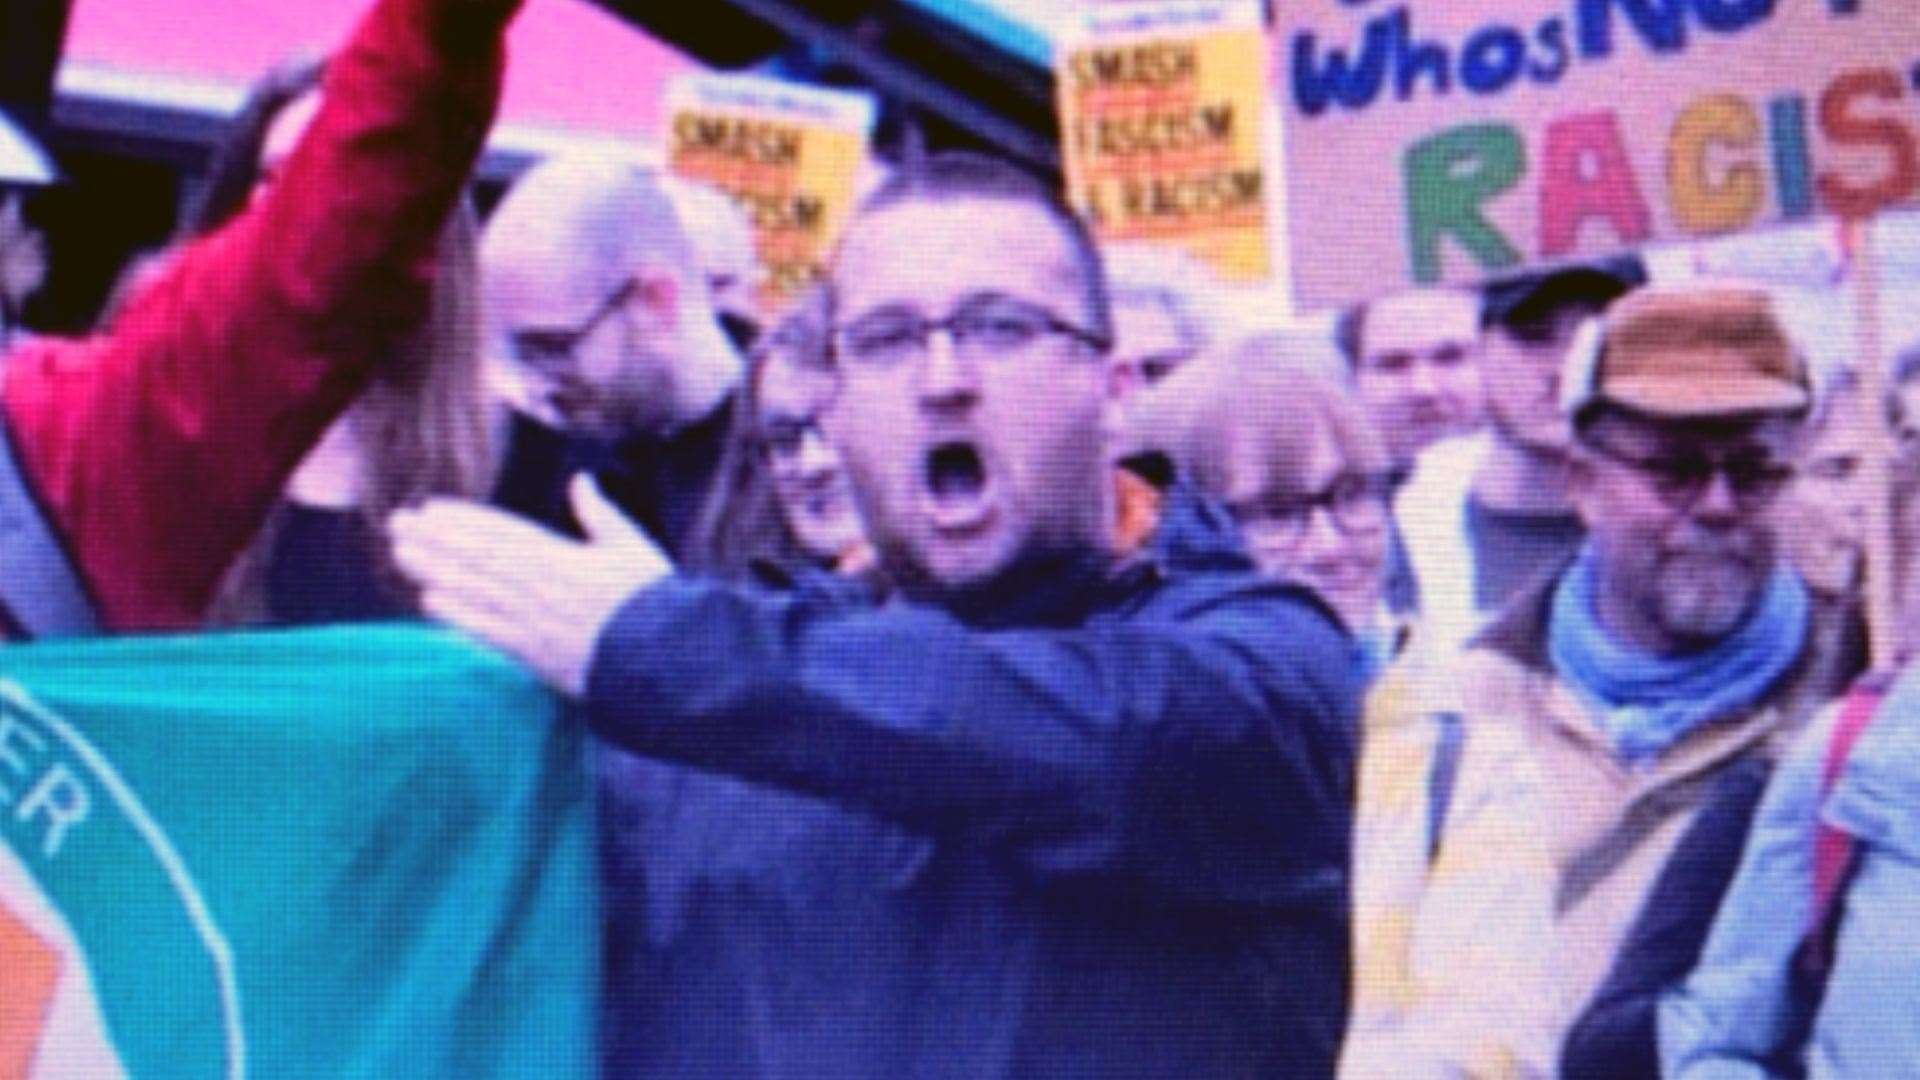 Mr Burman was part of the anti-fascist protesters in 2016